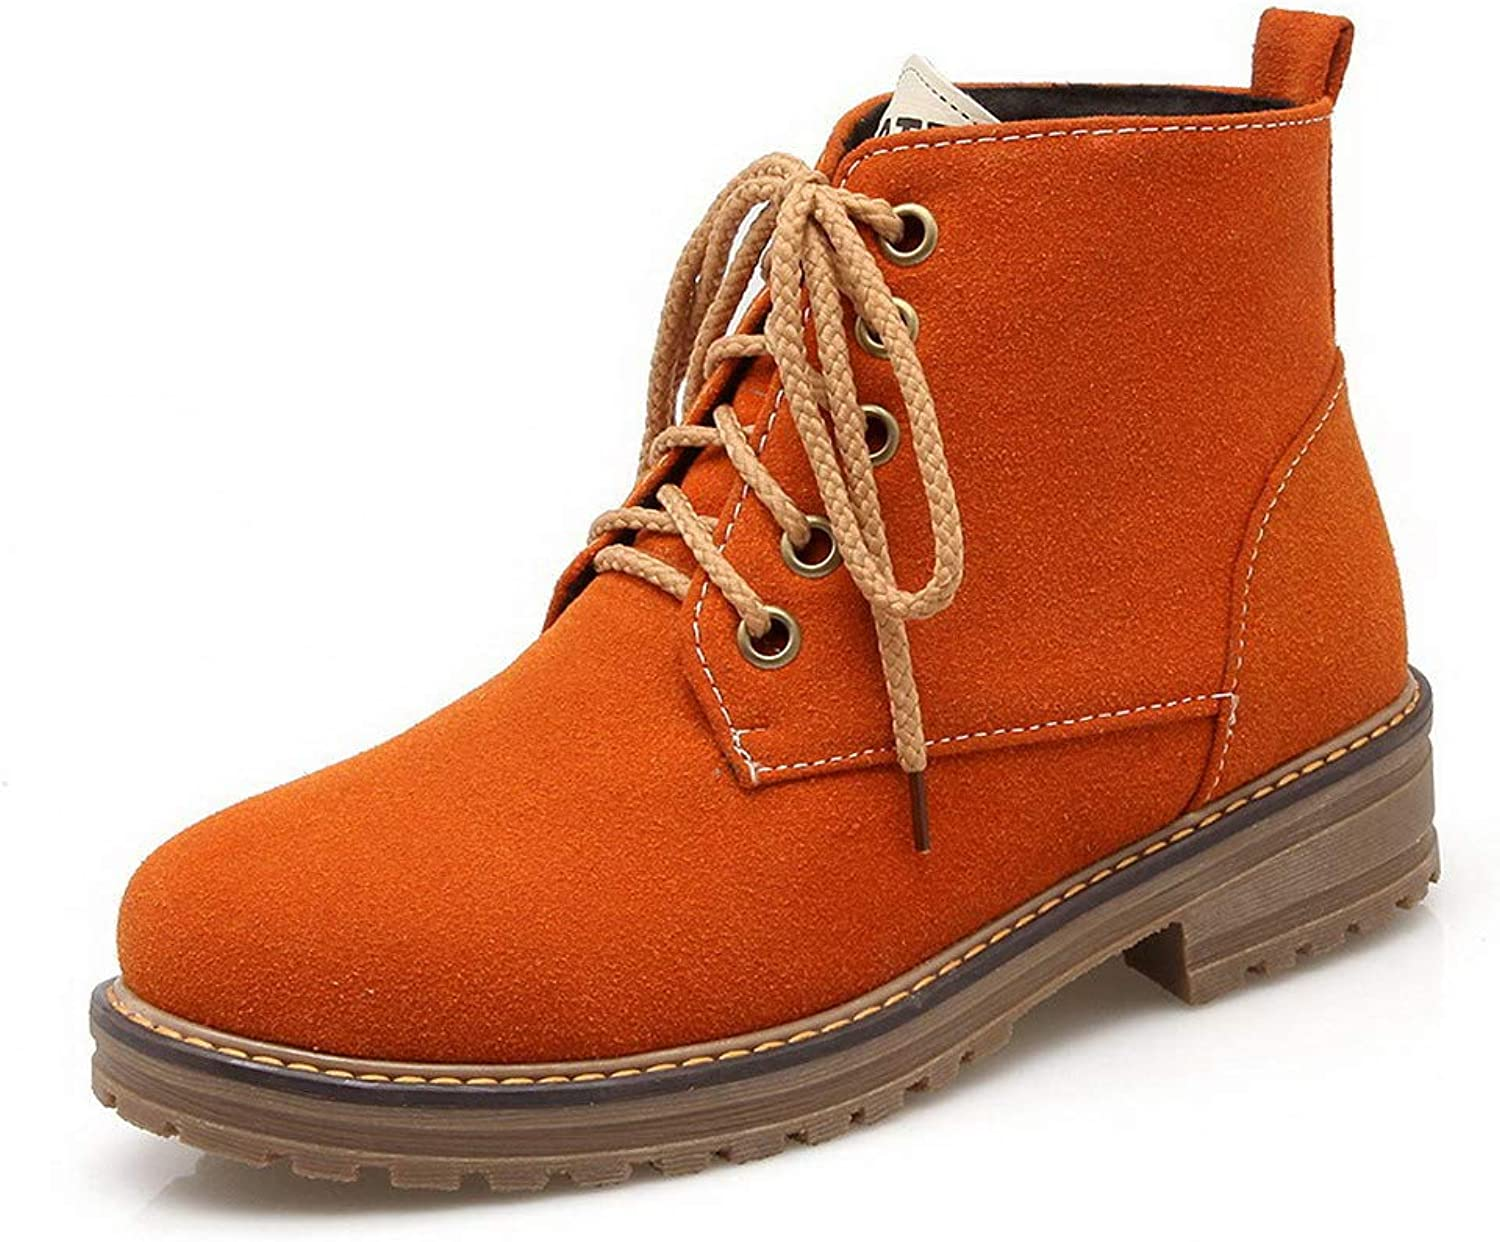 WeiPoot Women's Low-Top Solid Lace-Up Closed-Toe Low-Heels Boots, EGHXH014480